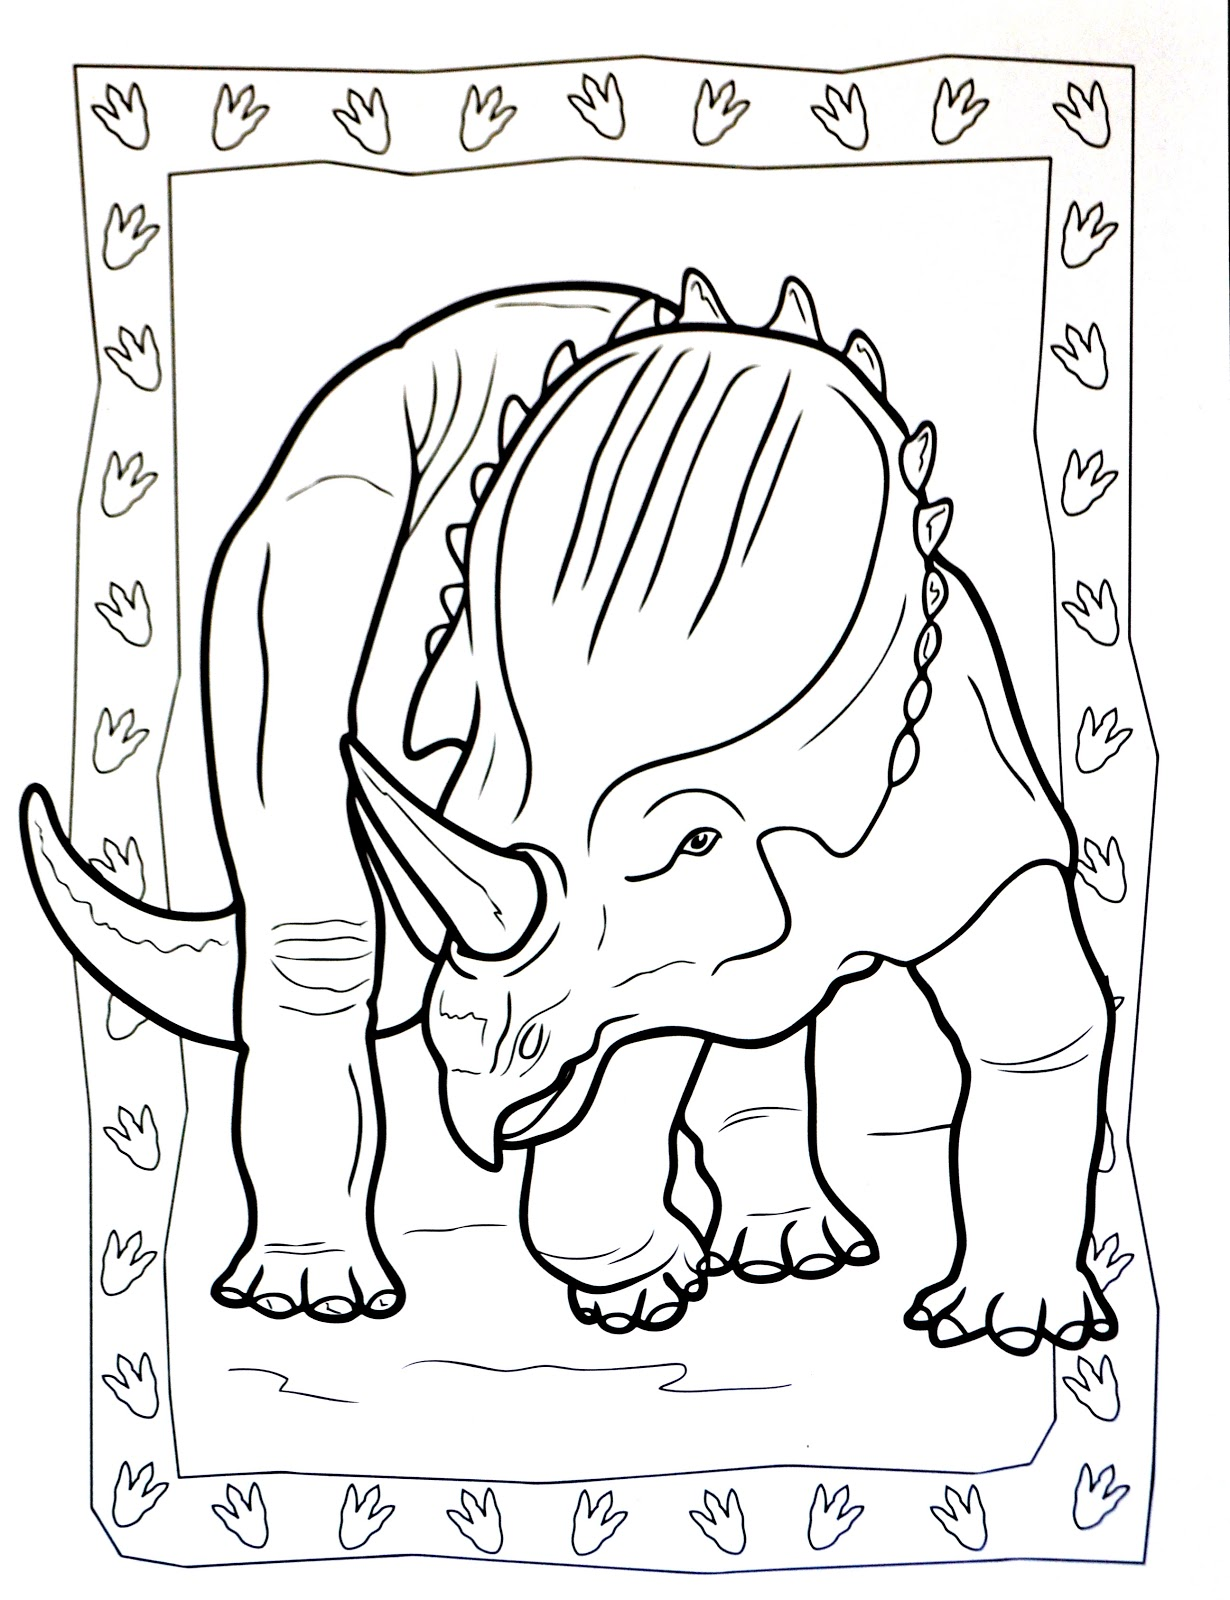 Dinosaurs coloring pages 40